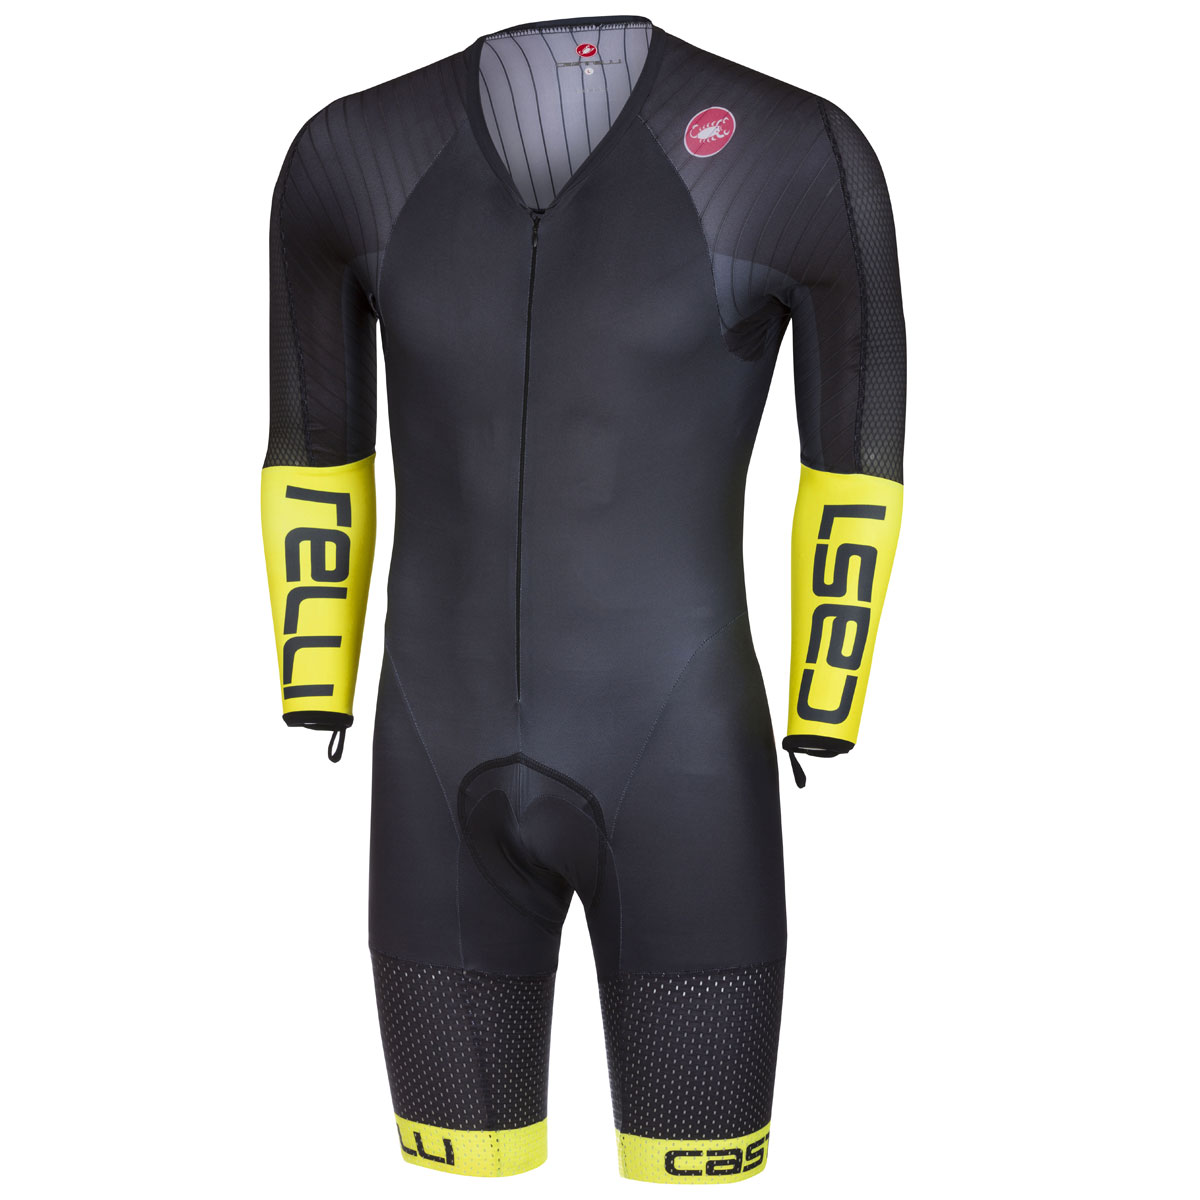 Uomo Body maniche lunghe Castelli Body Paint 3.3 Speed Suit - Giallo